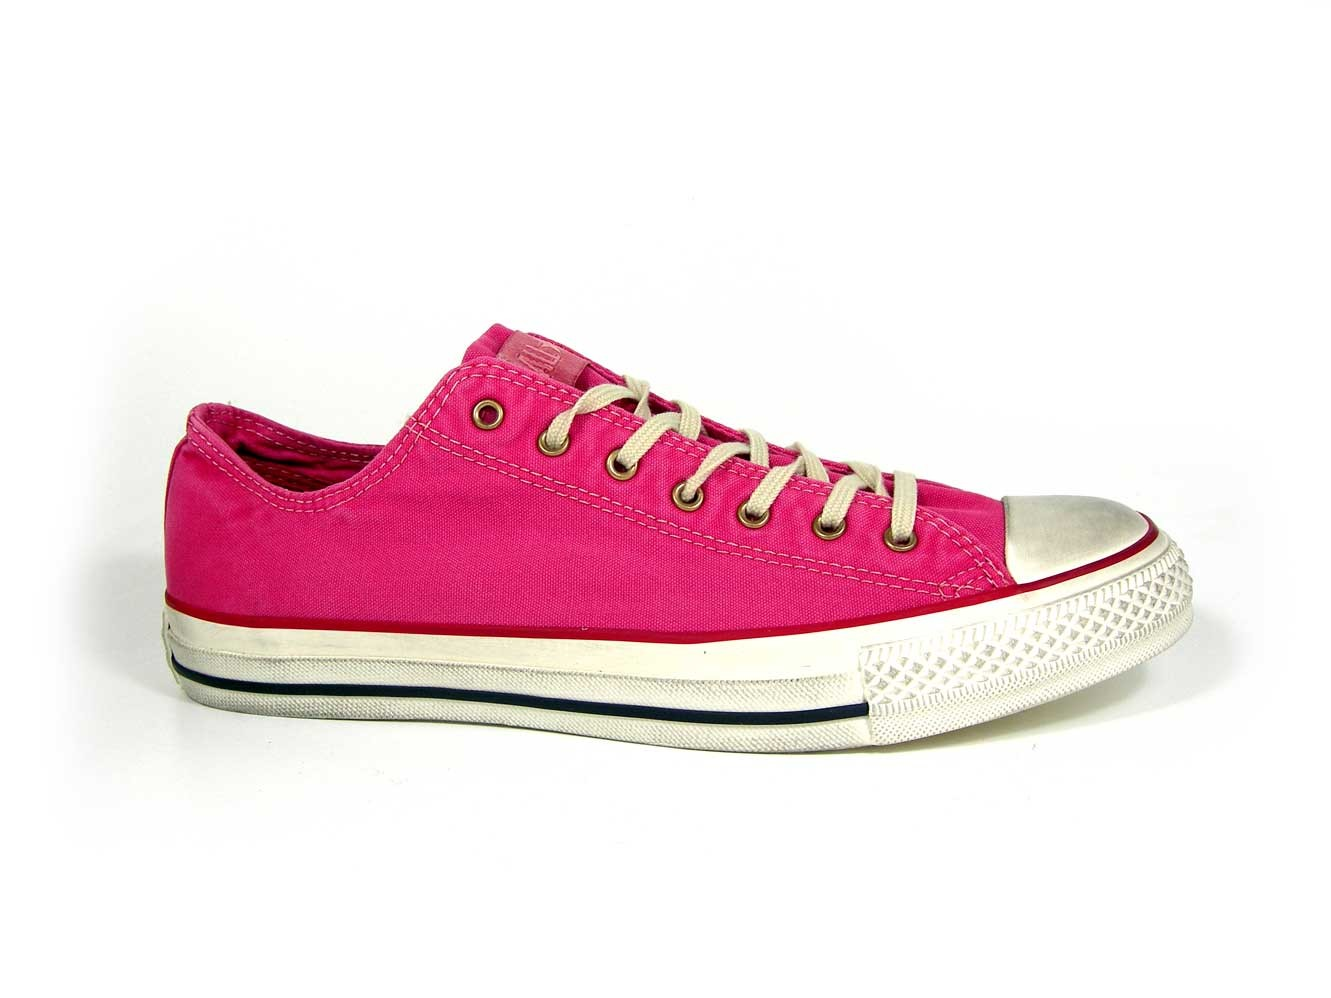 62242f7583f Converse All Star dames grote maat schoenen